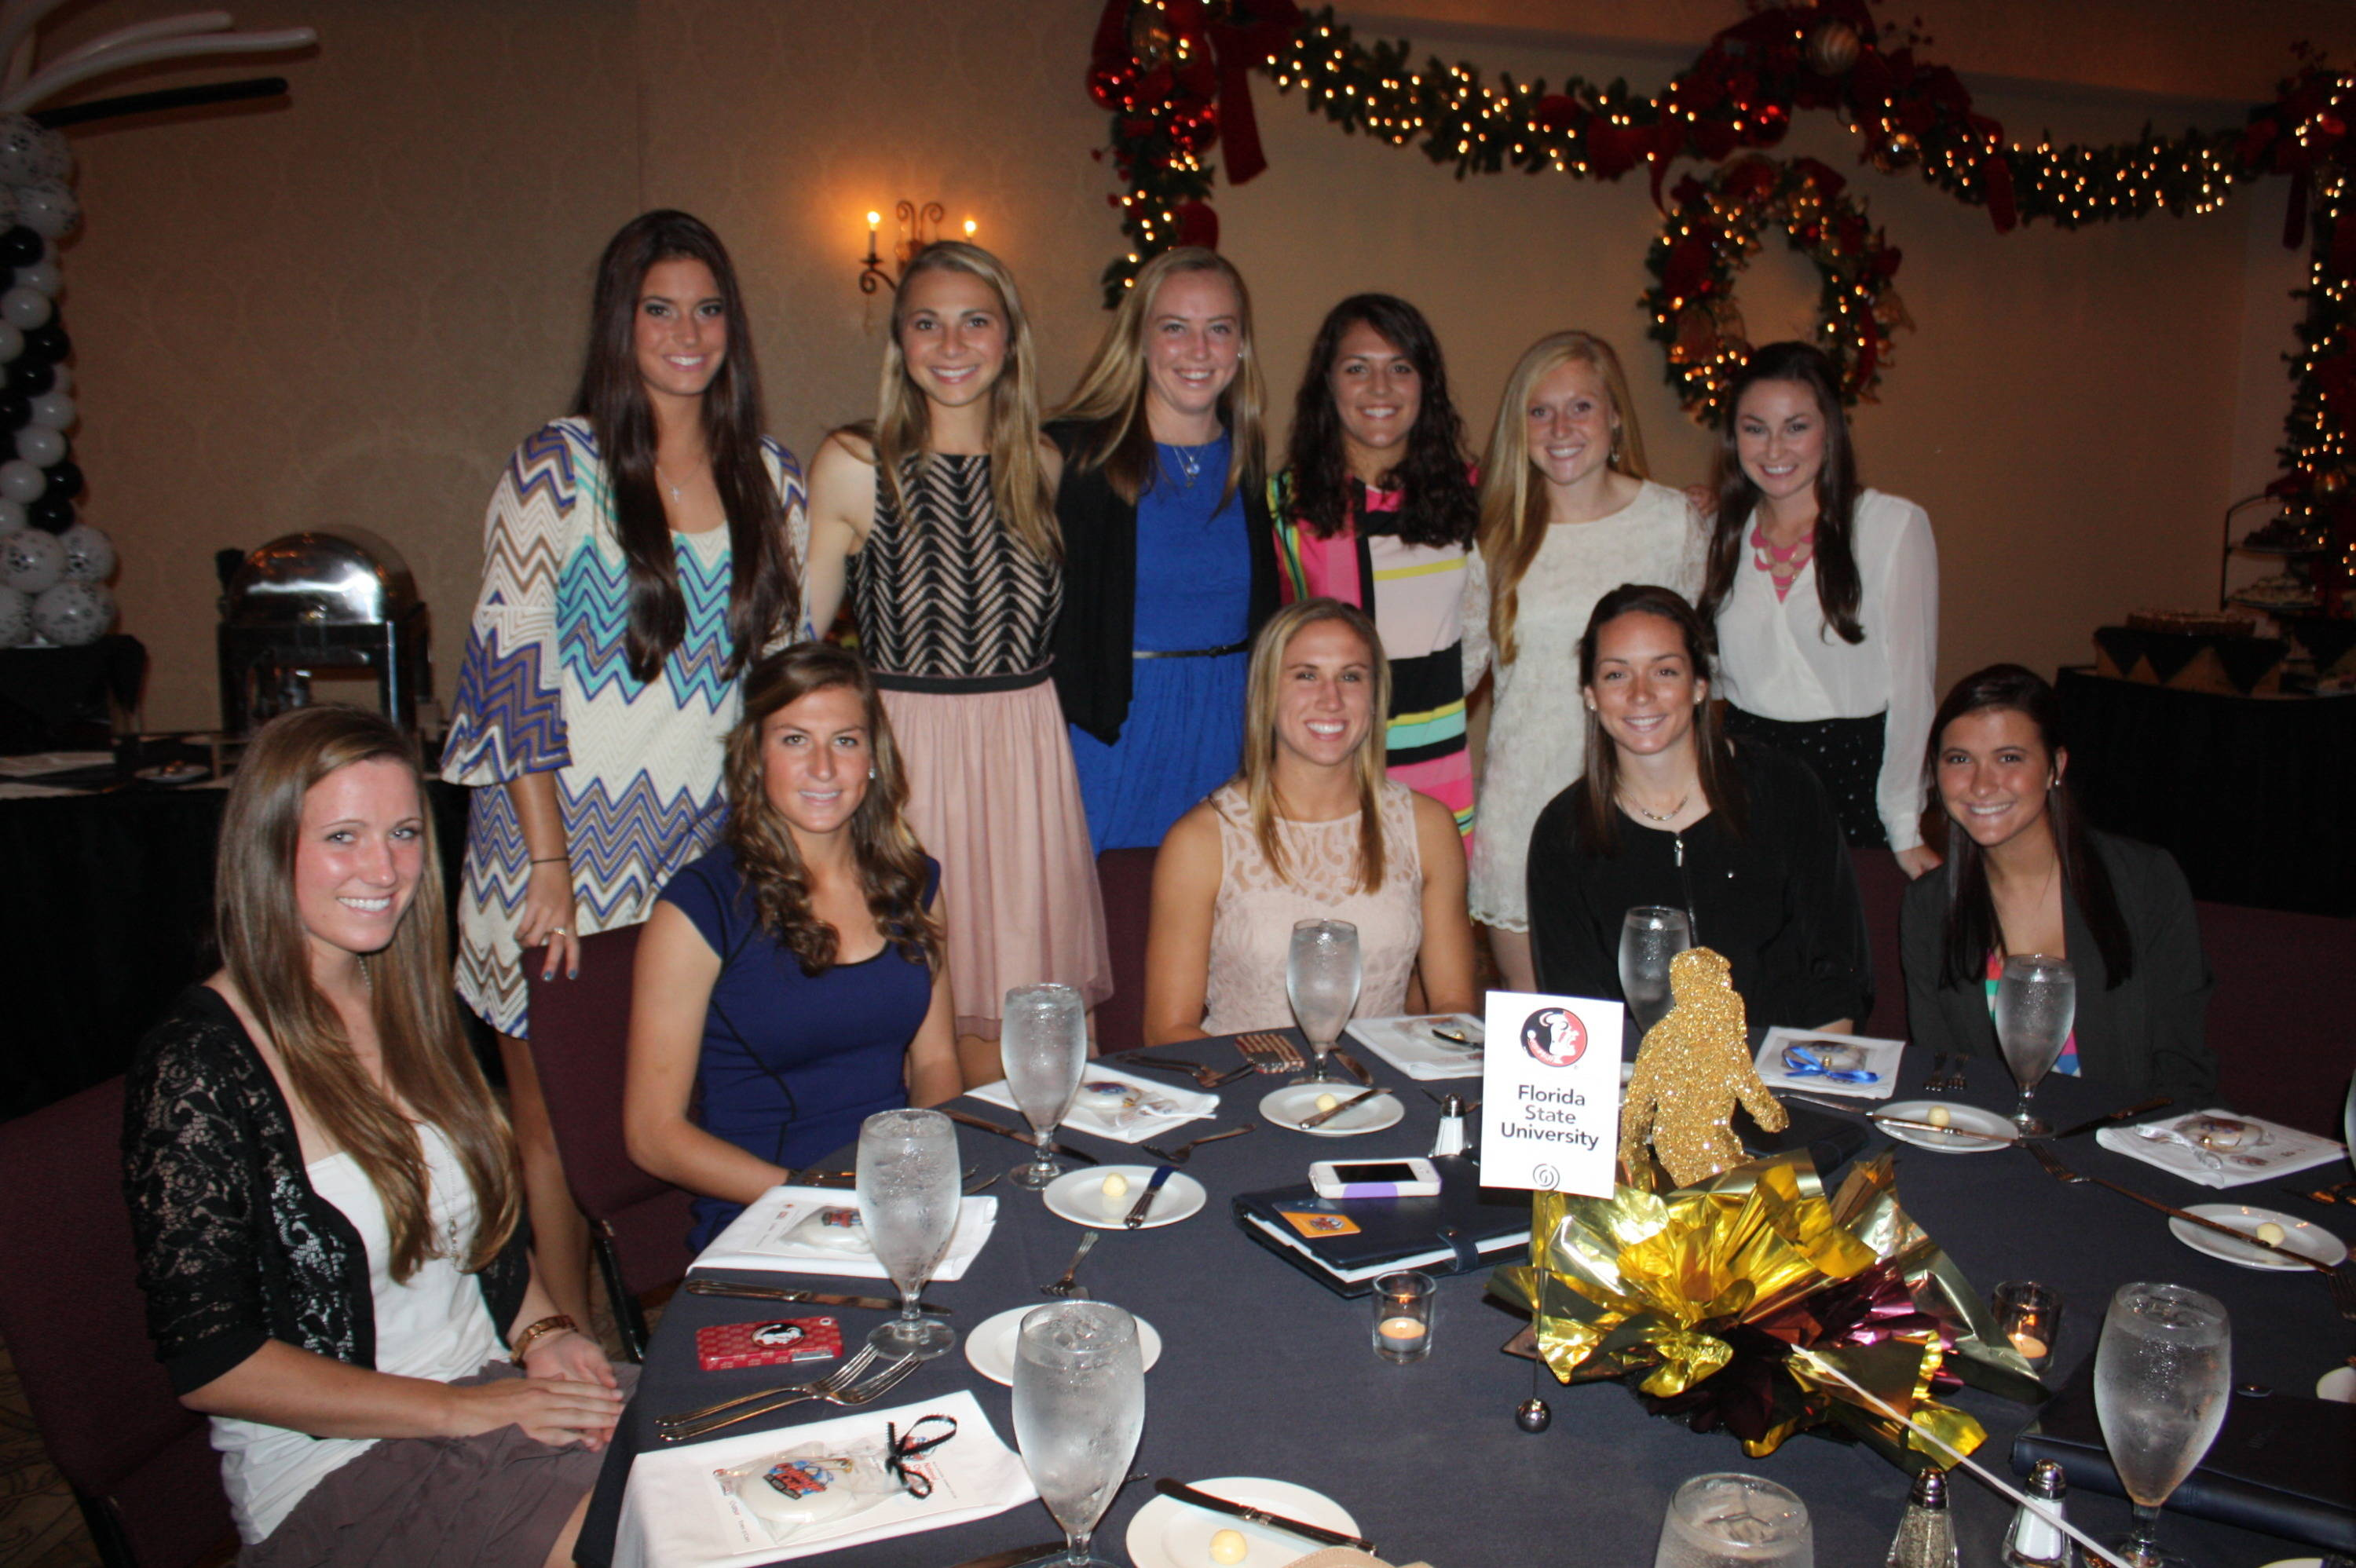 Florida State at the 2013 College Cup Banquet. Back Row (L to R): Ani Sarkisian, Anna McClung, Cassie Miller, Marta Bakowska-Mathews, Kacy Scarpa, Kirsten Crowley; Isabella Schmid, Kassey Kallman, Kristin Grubka, Kelsey Wys and Carson Pickett.